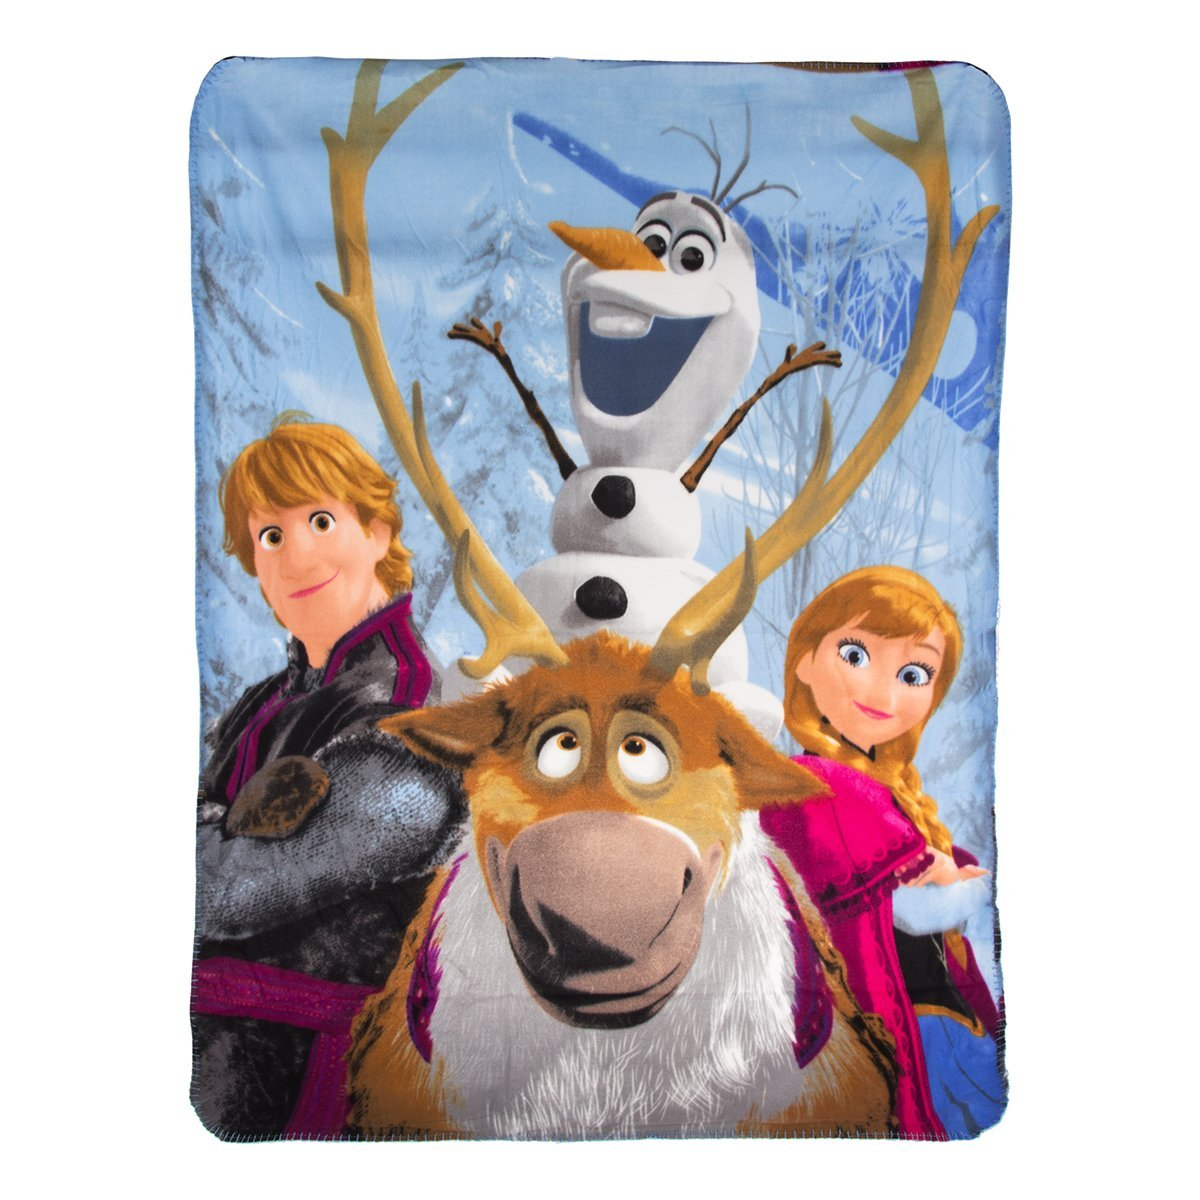 Disney's Frozen, 'Out in The Cold' Fleece Throw Blanket, 46' x 60', Multi Color Out in The Cold Fleece Throw Blanket 46 x 60 The Northwest Company DFZ018000001RET